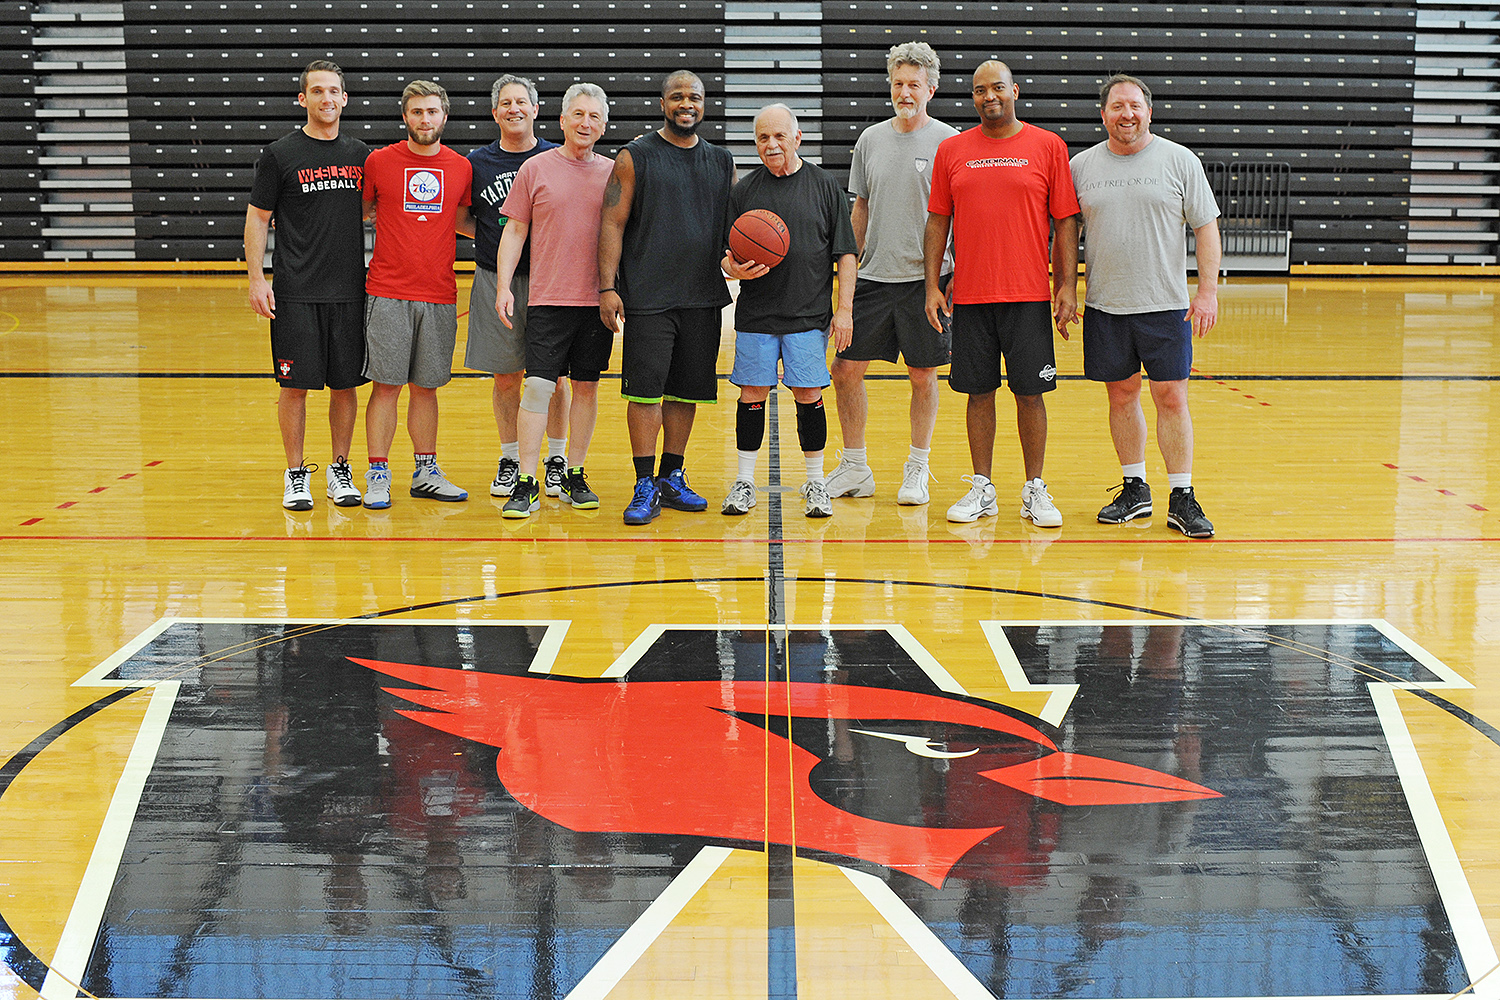 Pictured from left, are Chris Wojick, Tim Israel '16, Paul DiSanto, Rob Rosenthal, Greg Bernard, Stanley Fish, Vijay Pinch, Frantz Williams and Chuck Fedolfi.